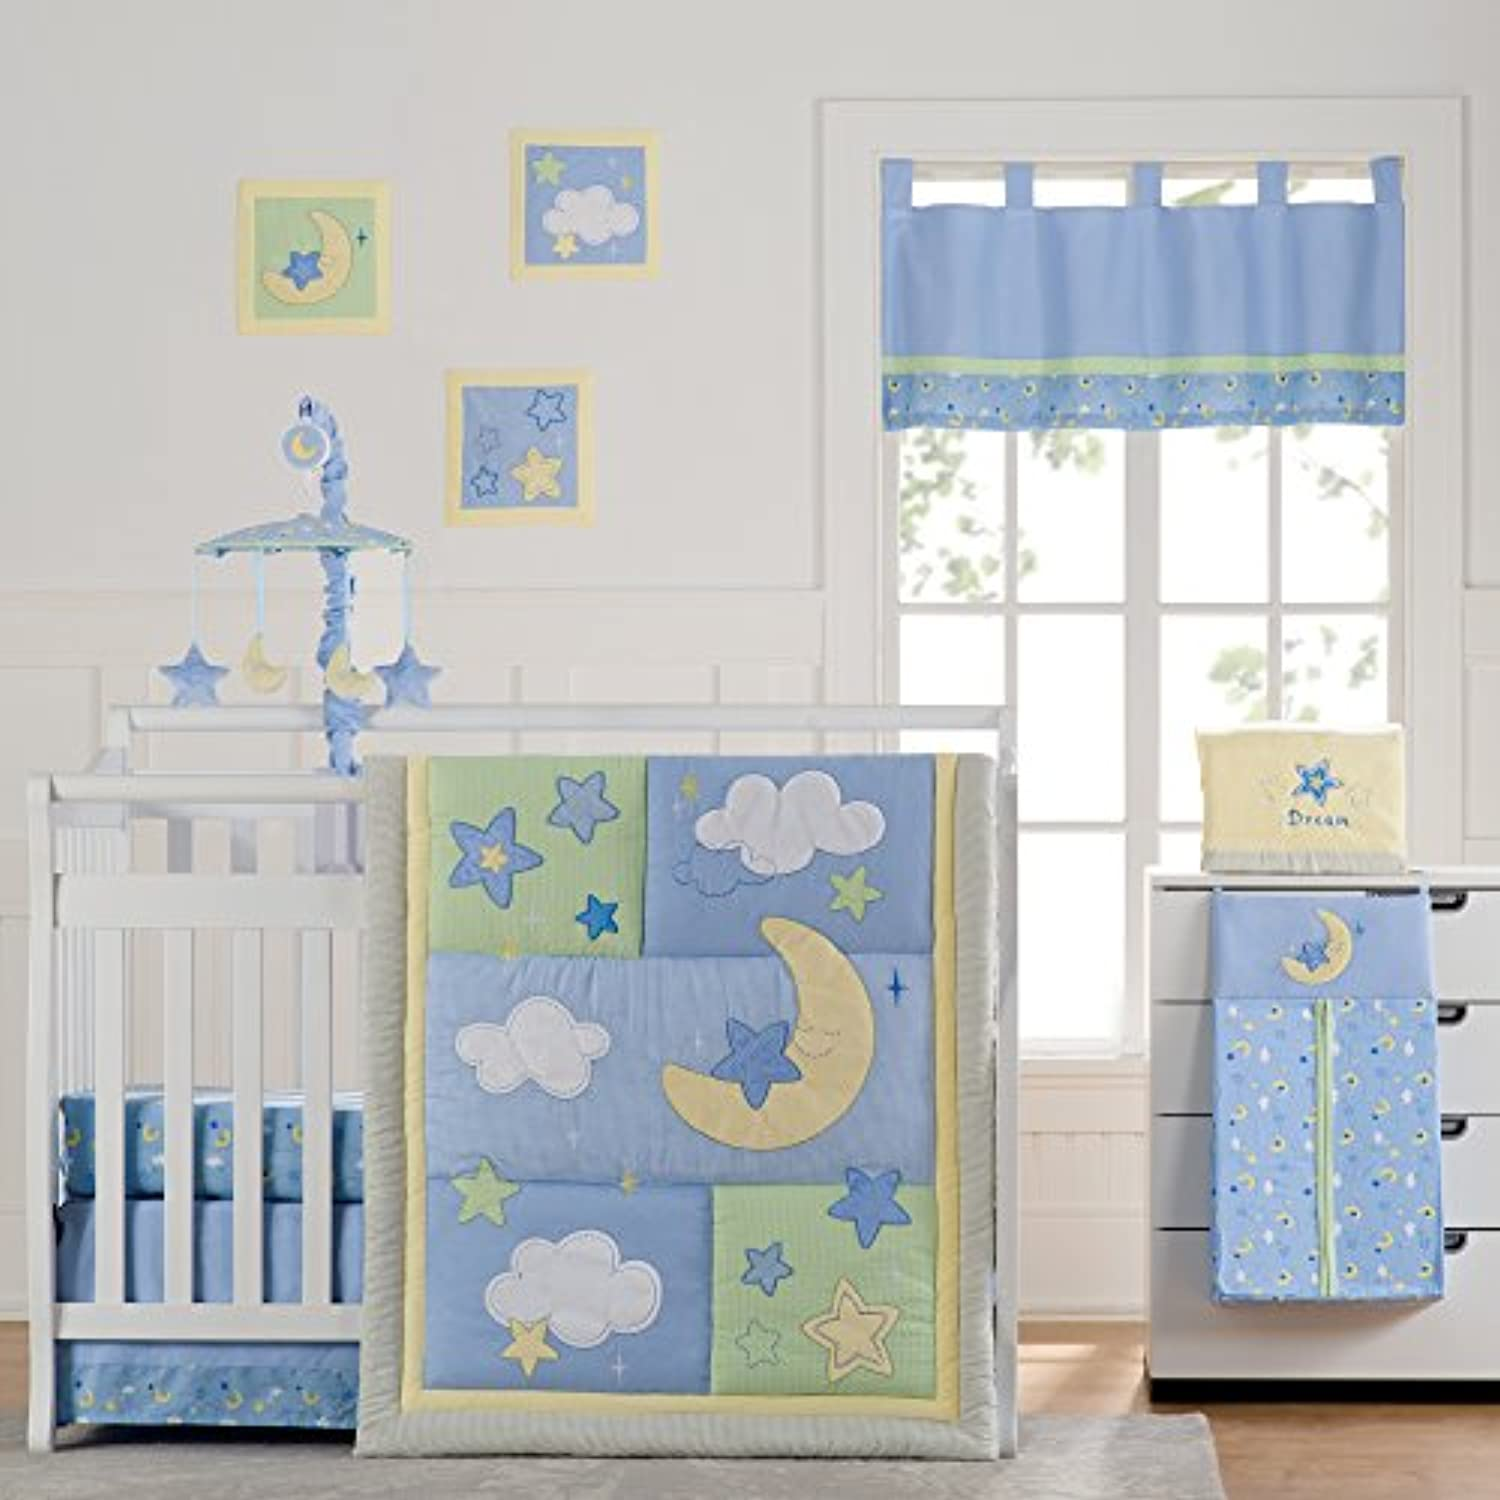 Wish I May Quintessential Cotton quilted 10 Piece Crib Bedding Set by Laugh, Giggle & Smile